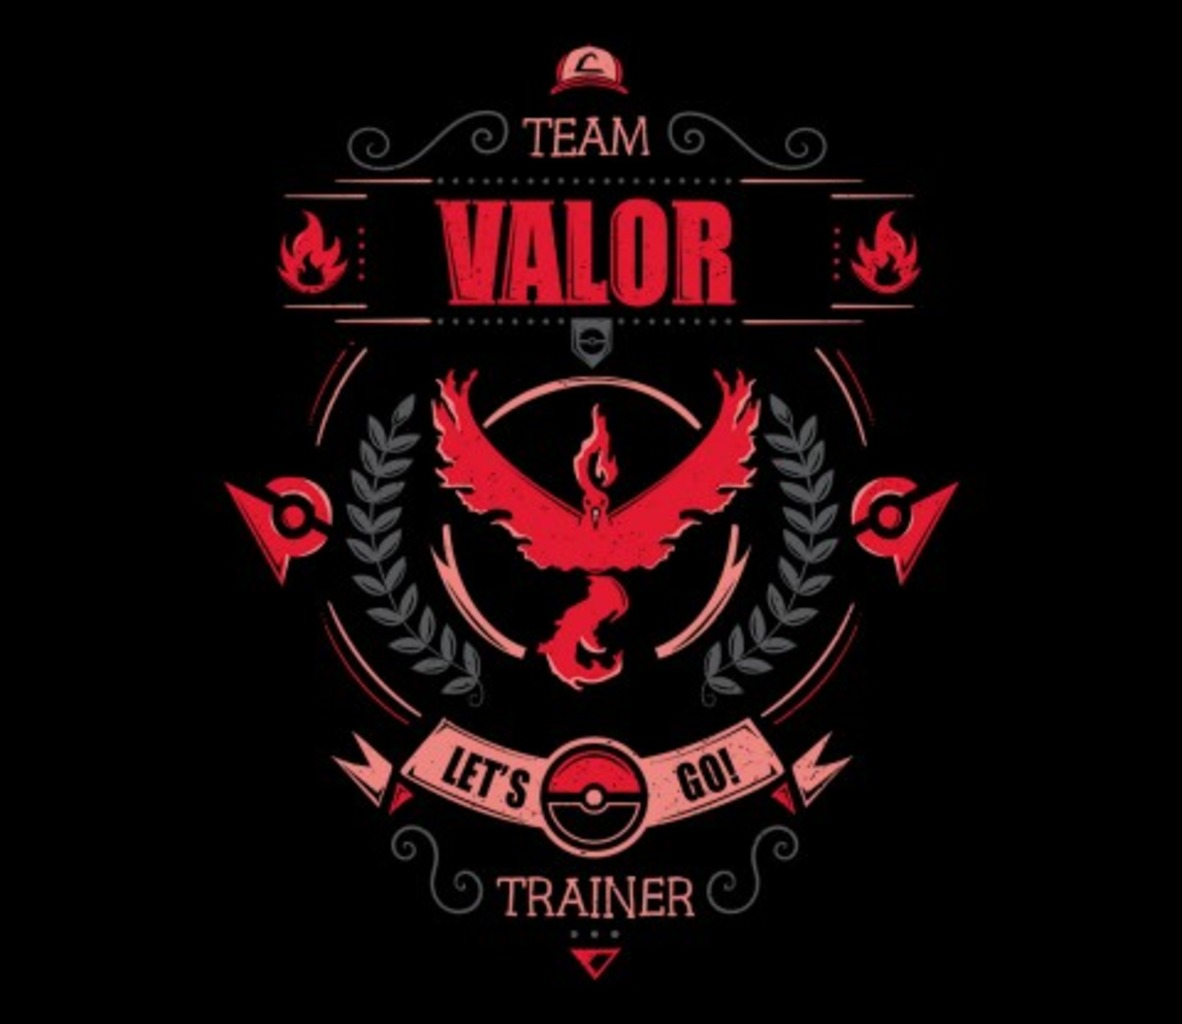 TeeFury: Let's Go! Valor